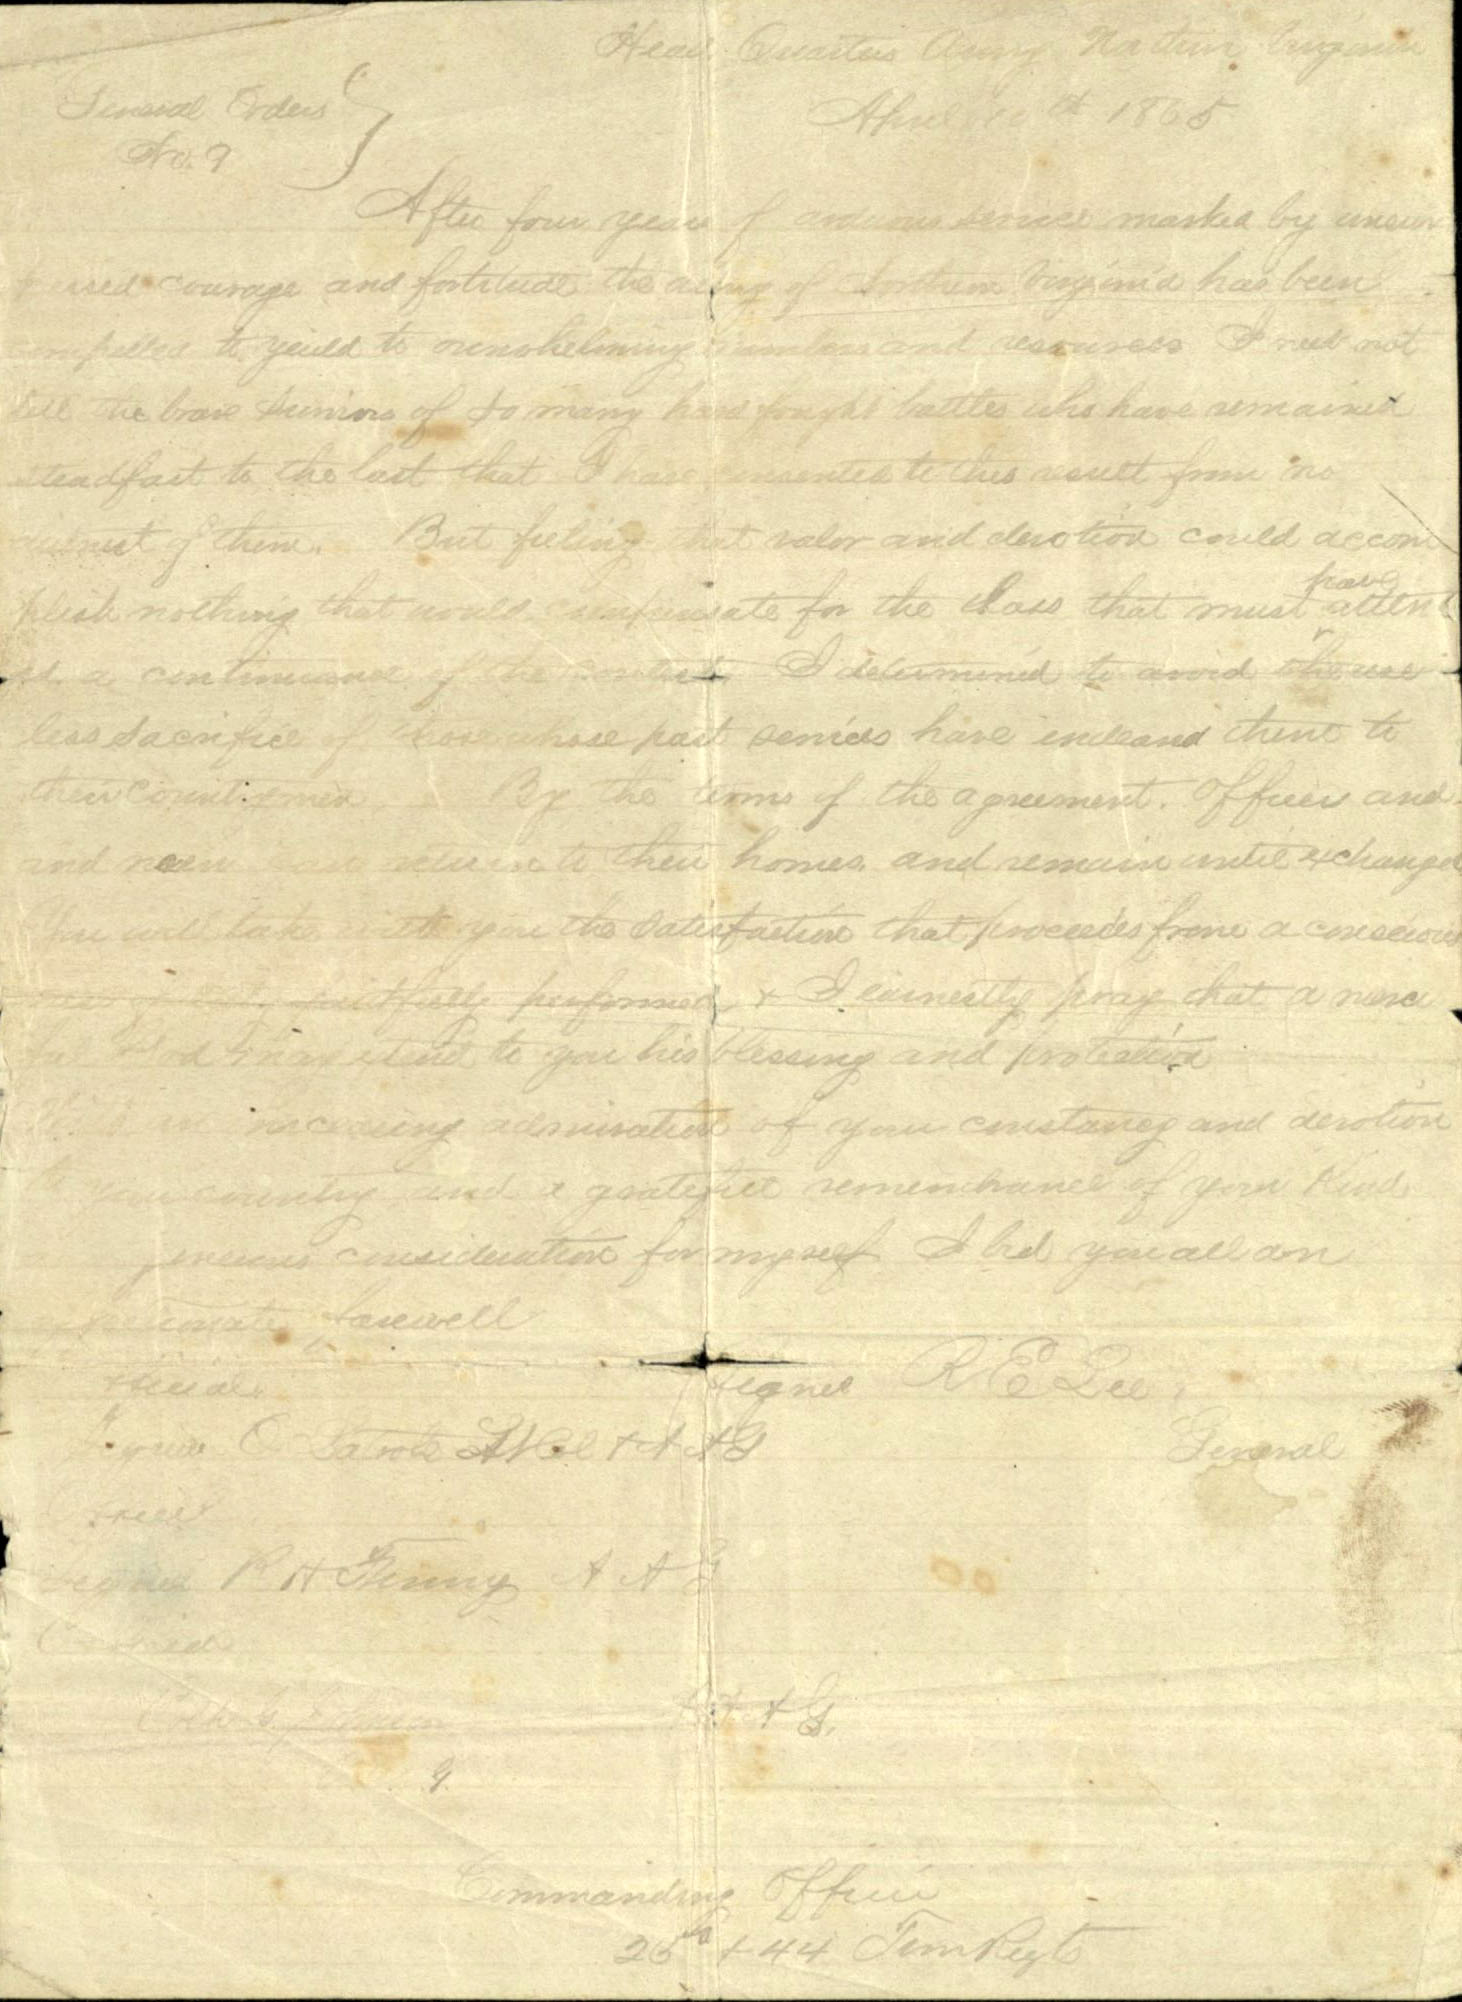 Robert E. Lee's General Order No. 9